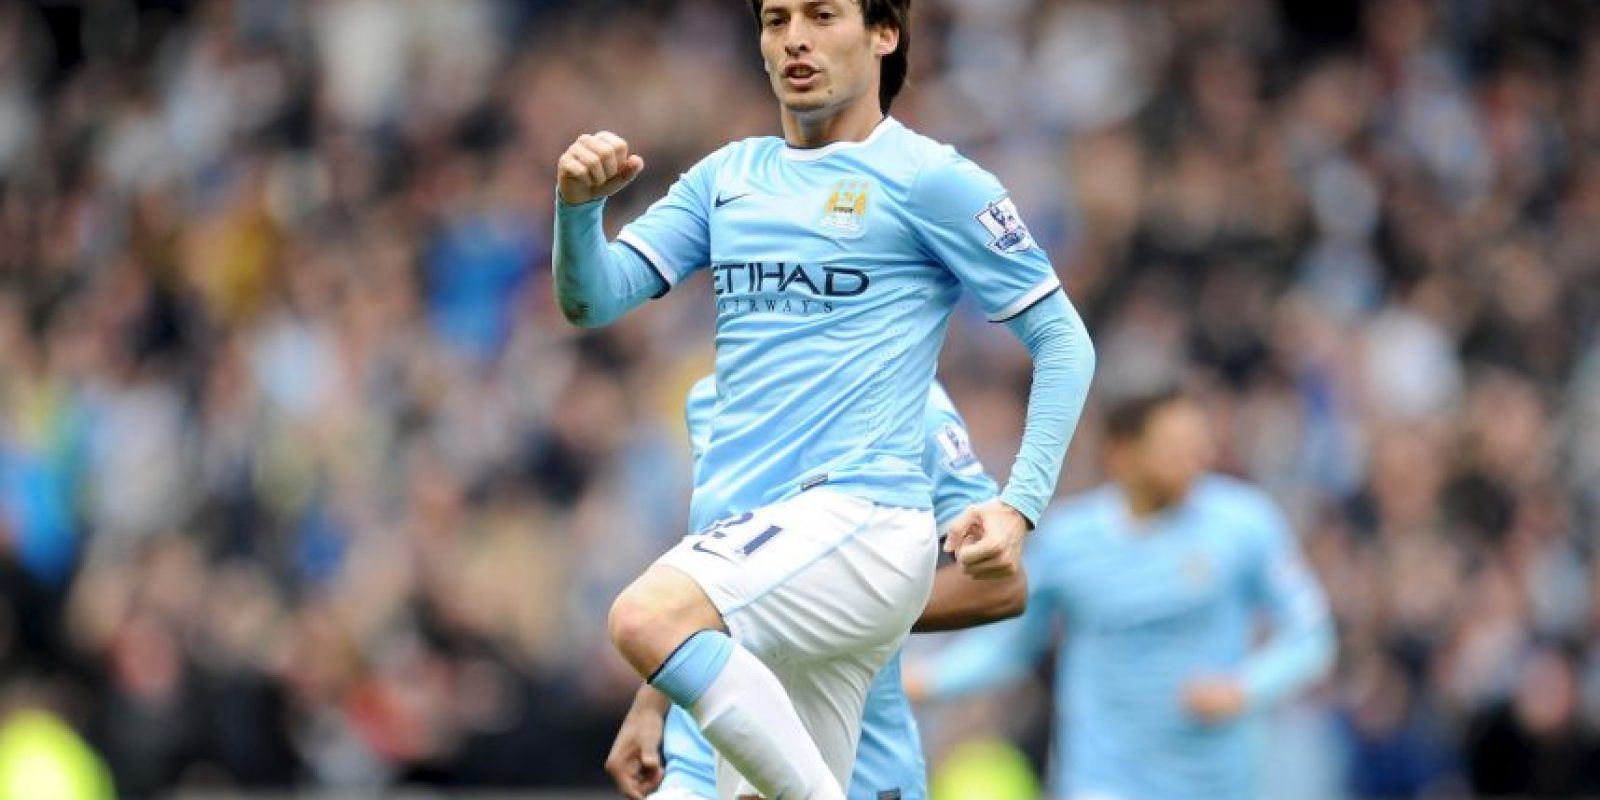 David Silva – 8 de enero de 1986. Foto: Getty Images